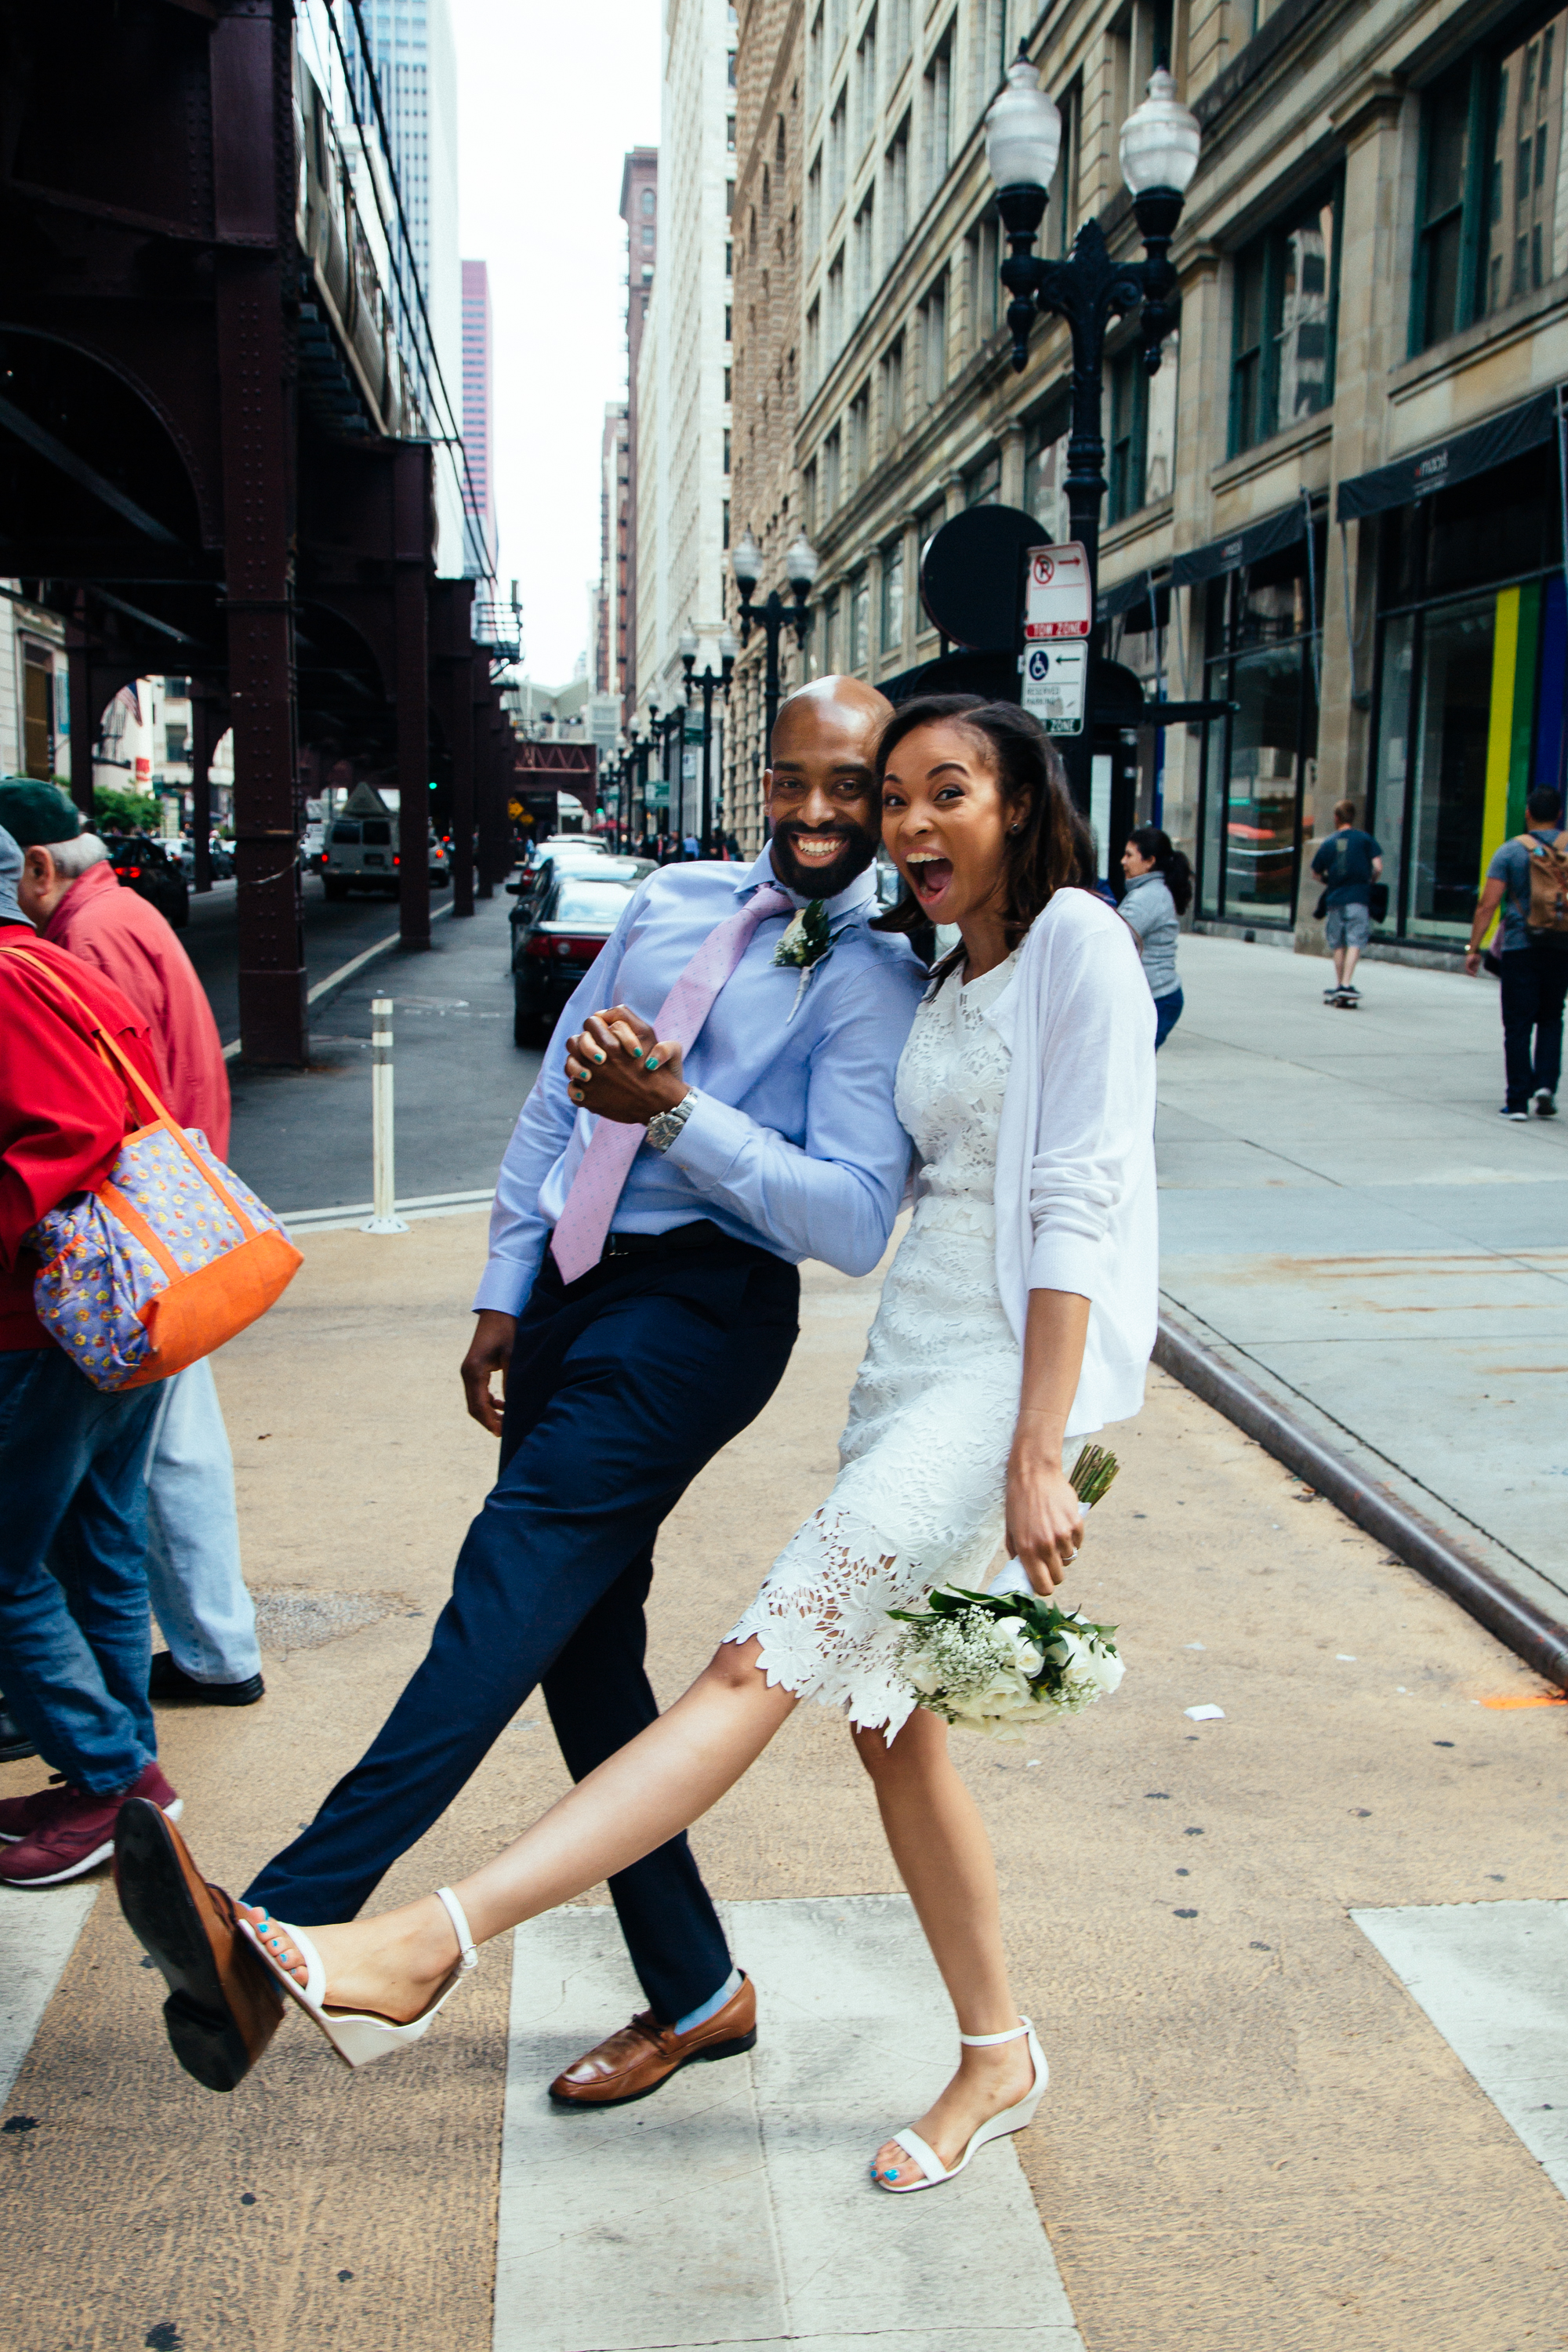 chicago_elopement_tony_brittany-14.jpg